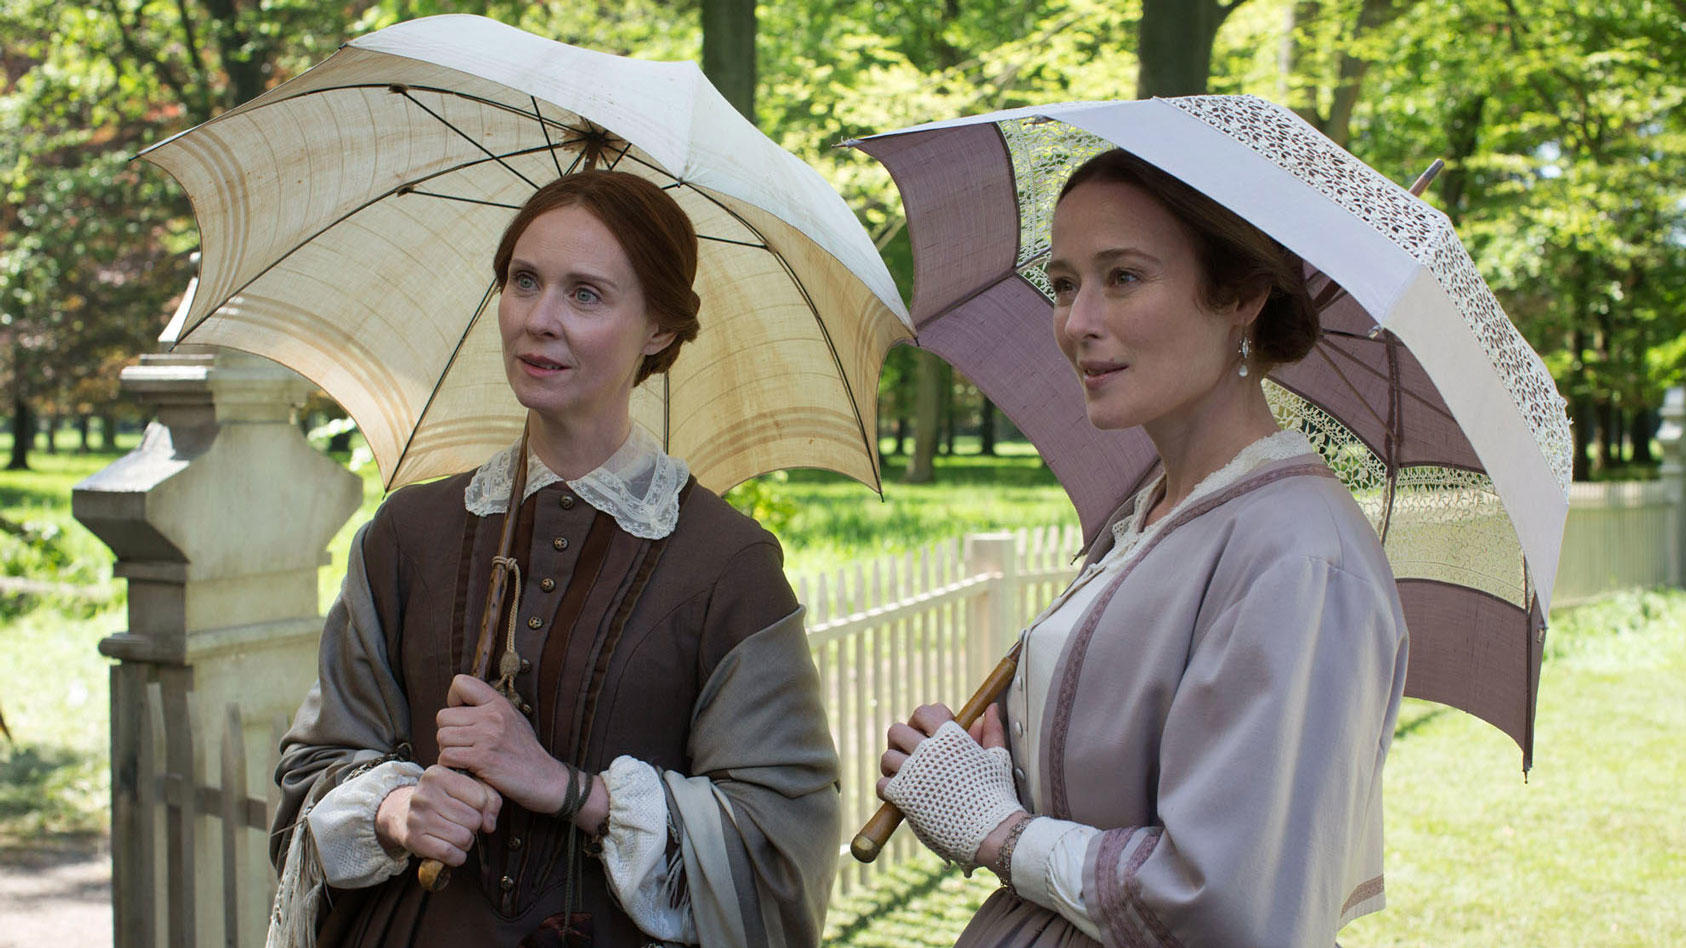 Check out the movie photos of 'A Quiet Passion'